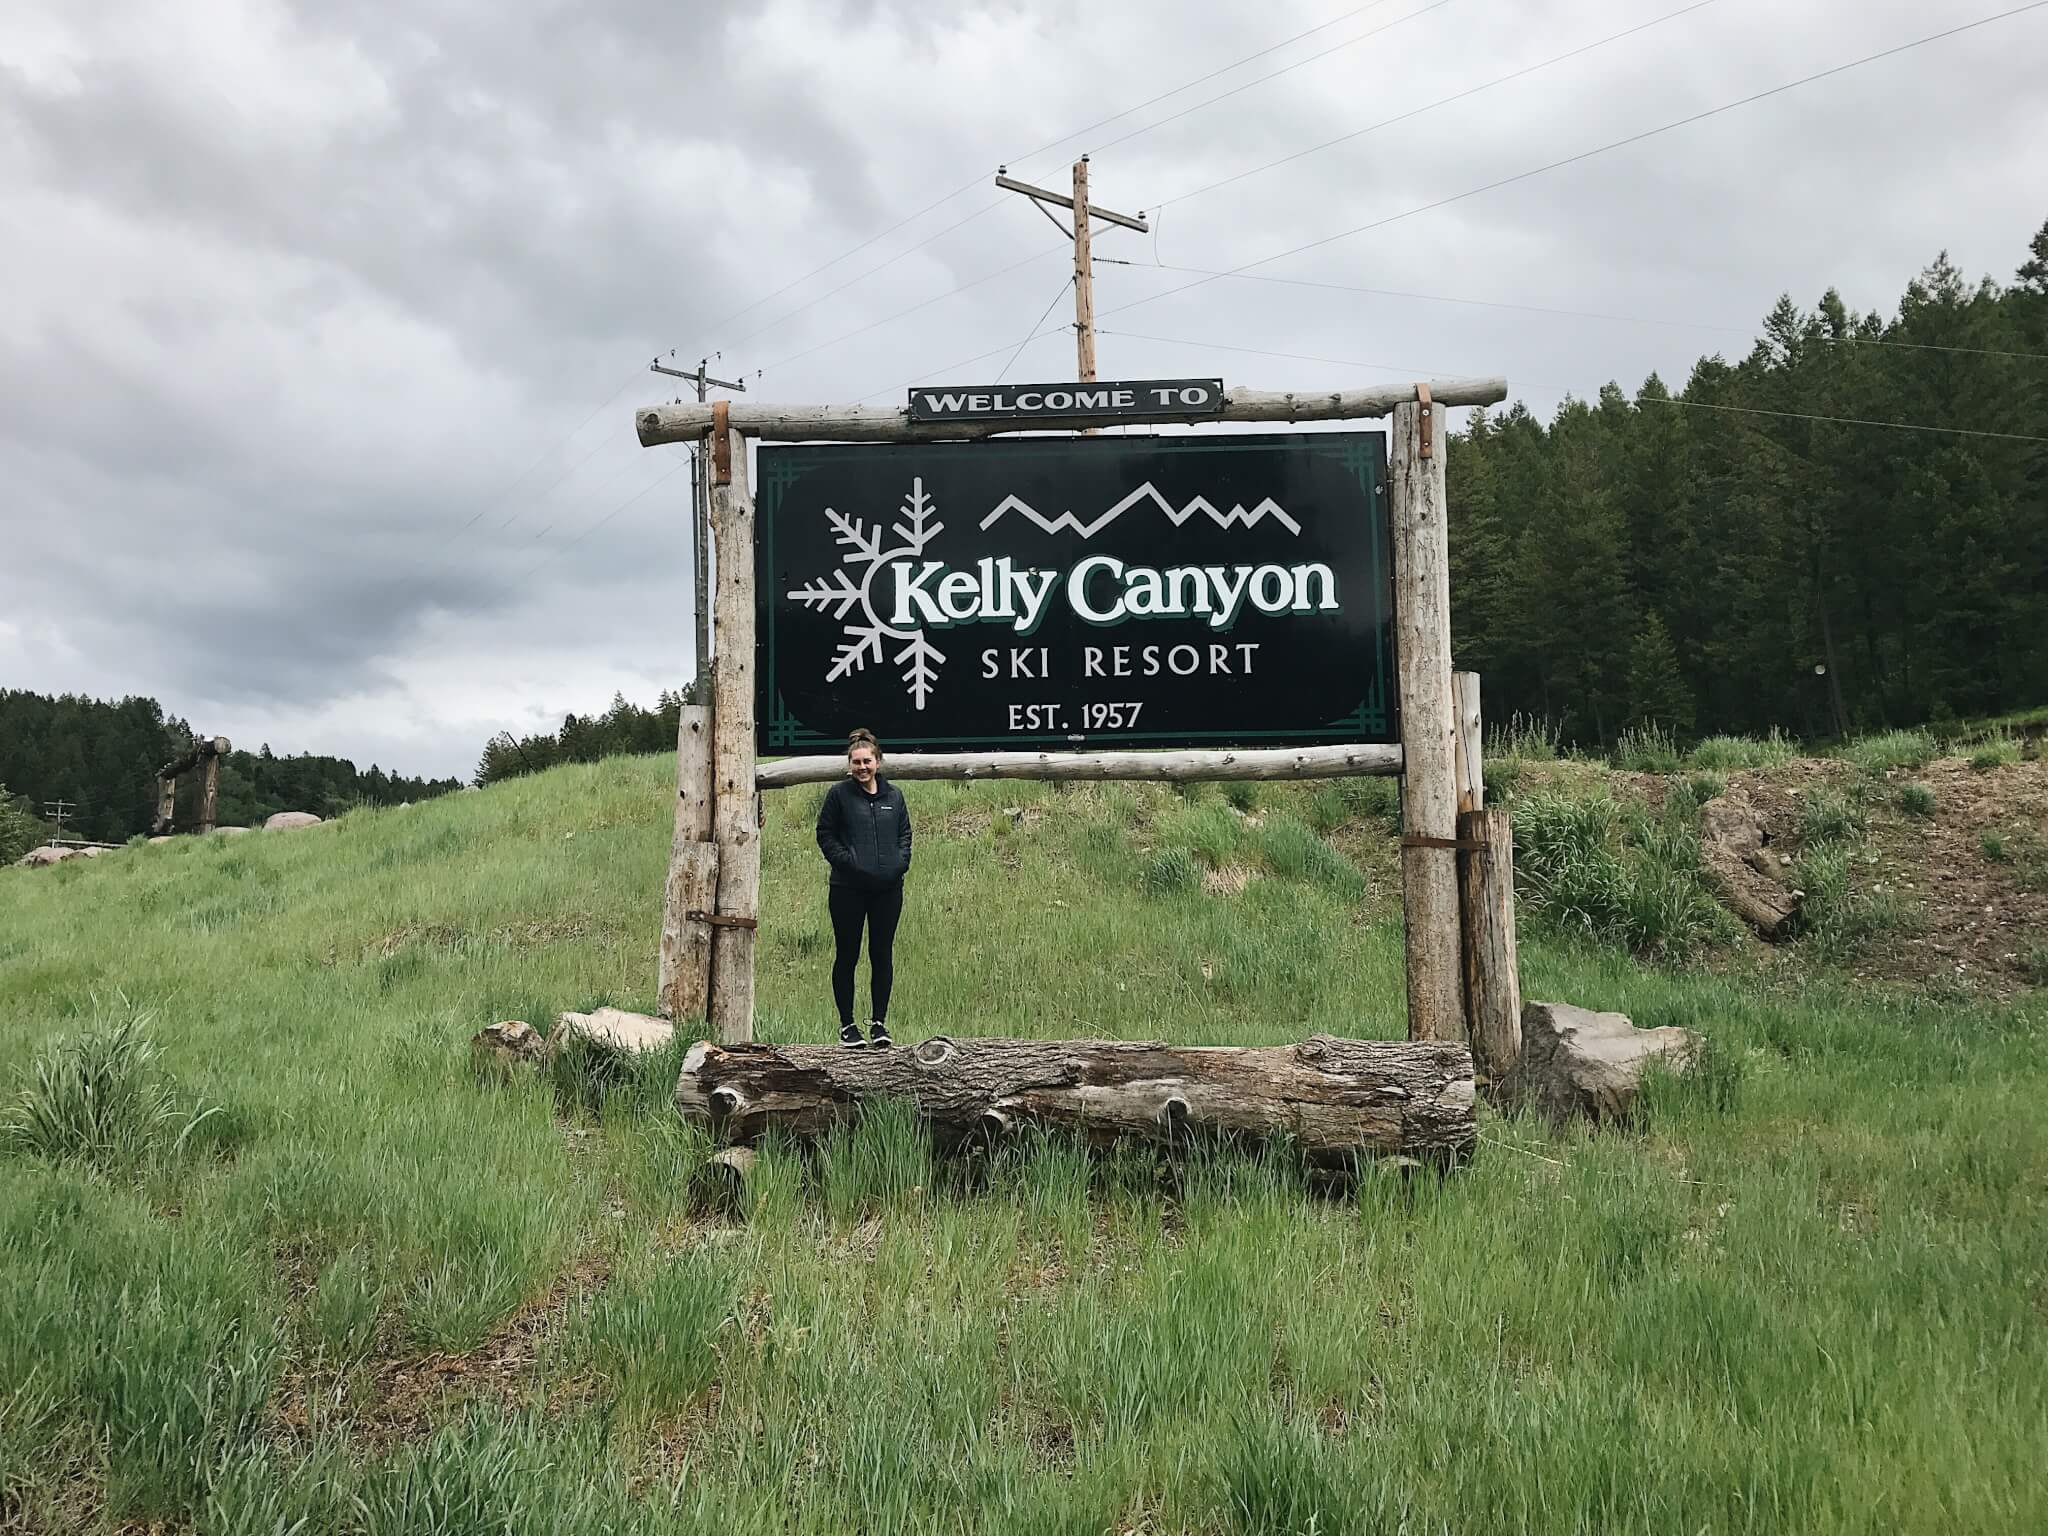 Kelly Canyon